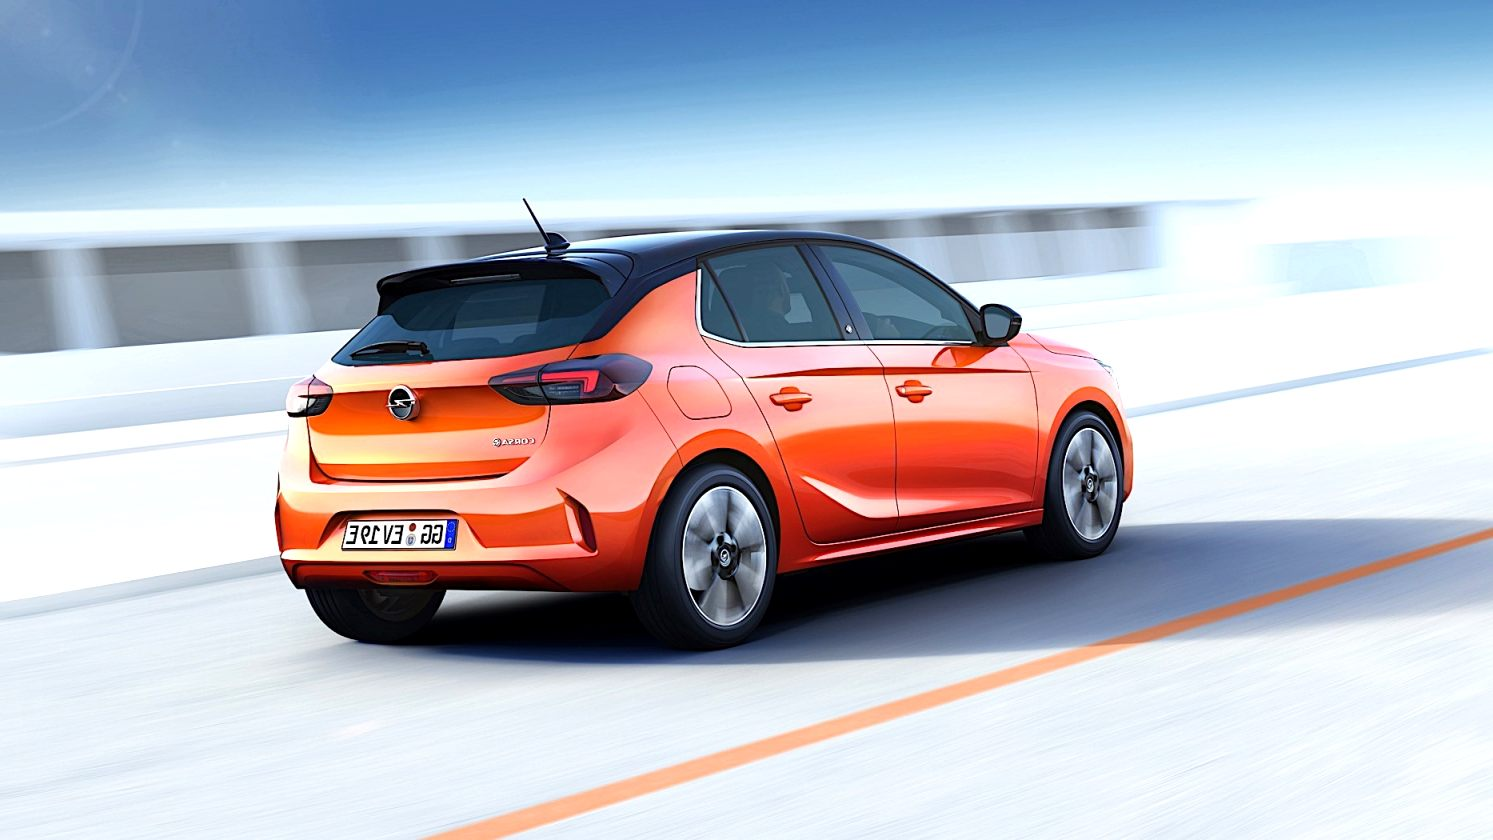 opel 2020 pret Release Date and Concept